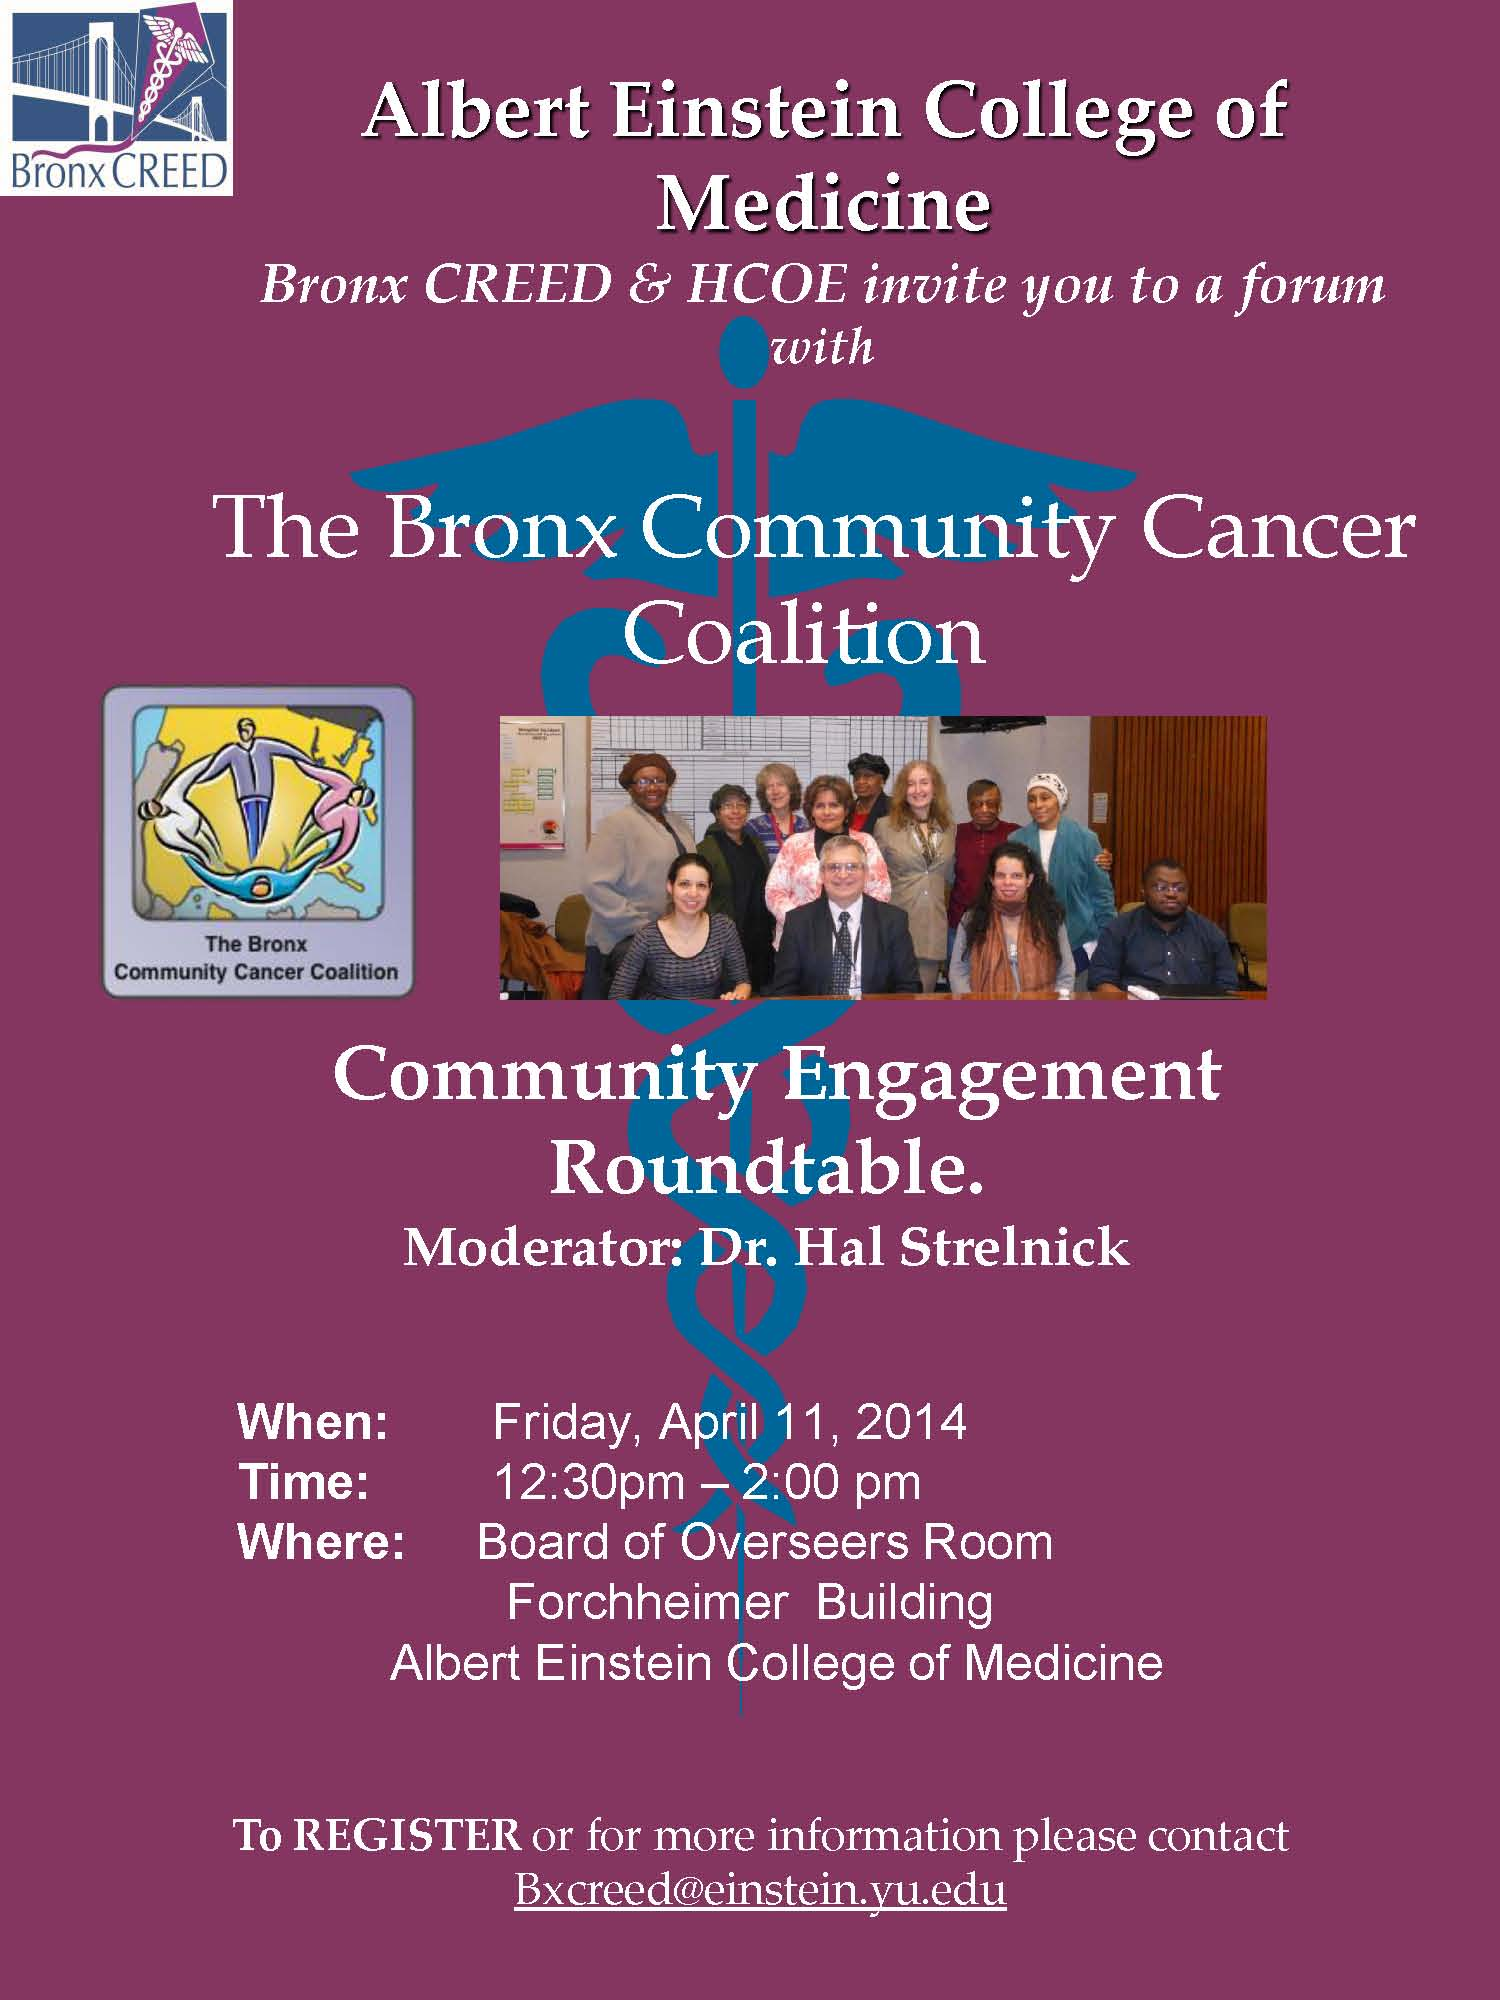 The Bronx Community Cancer Coalition Community Engagement Roundtable